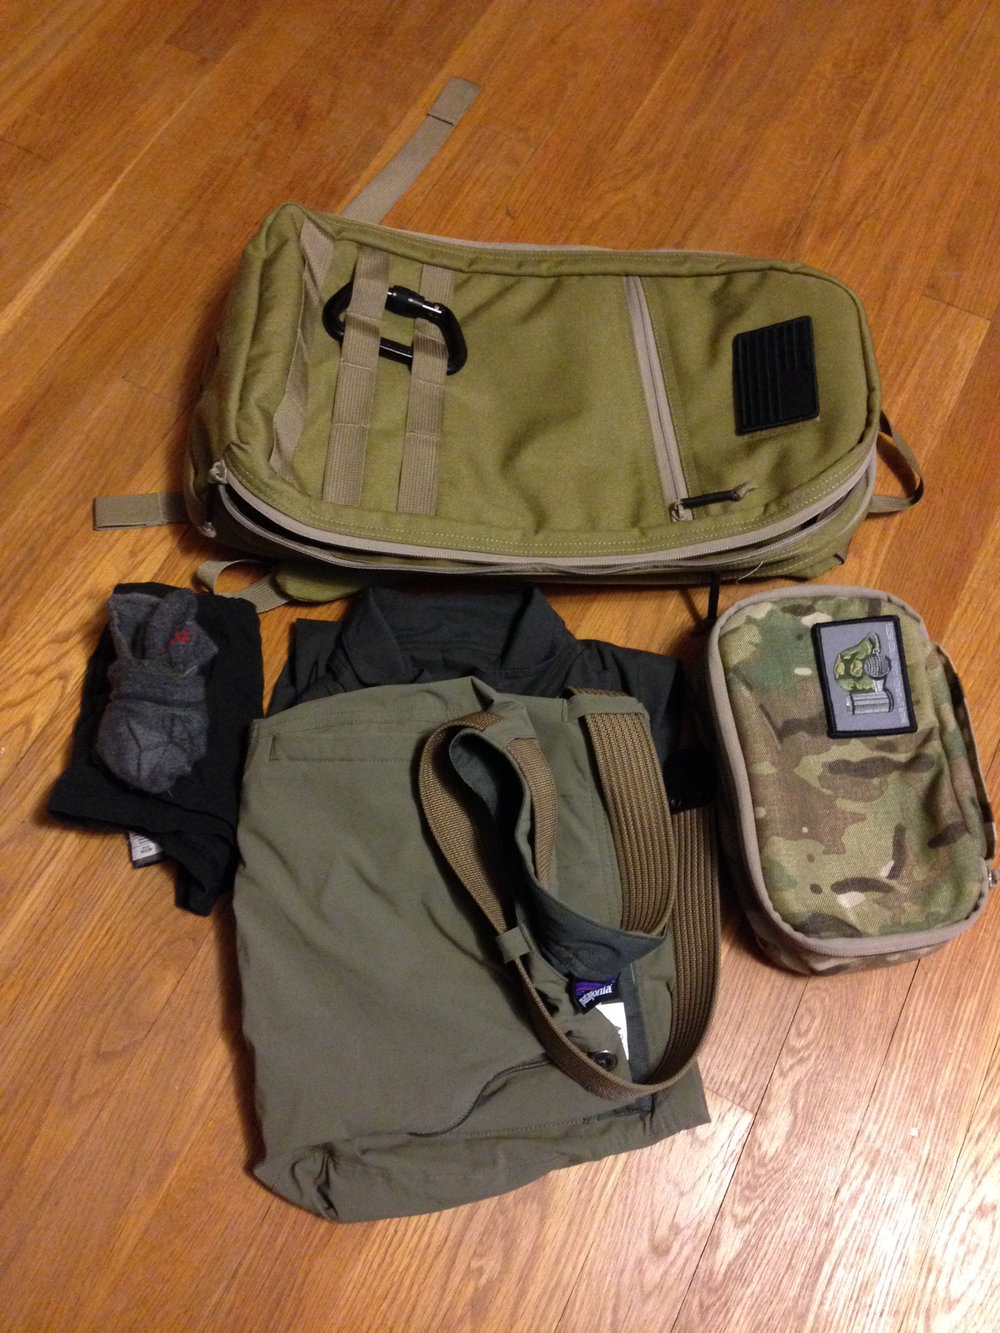 This is what I packed when I went to visit our friends from GORUCK in their HQ in Florida